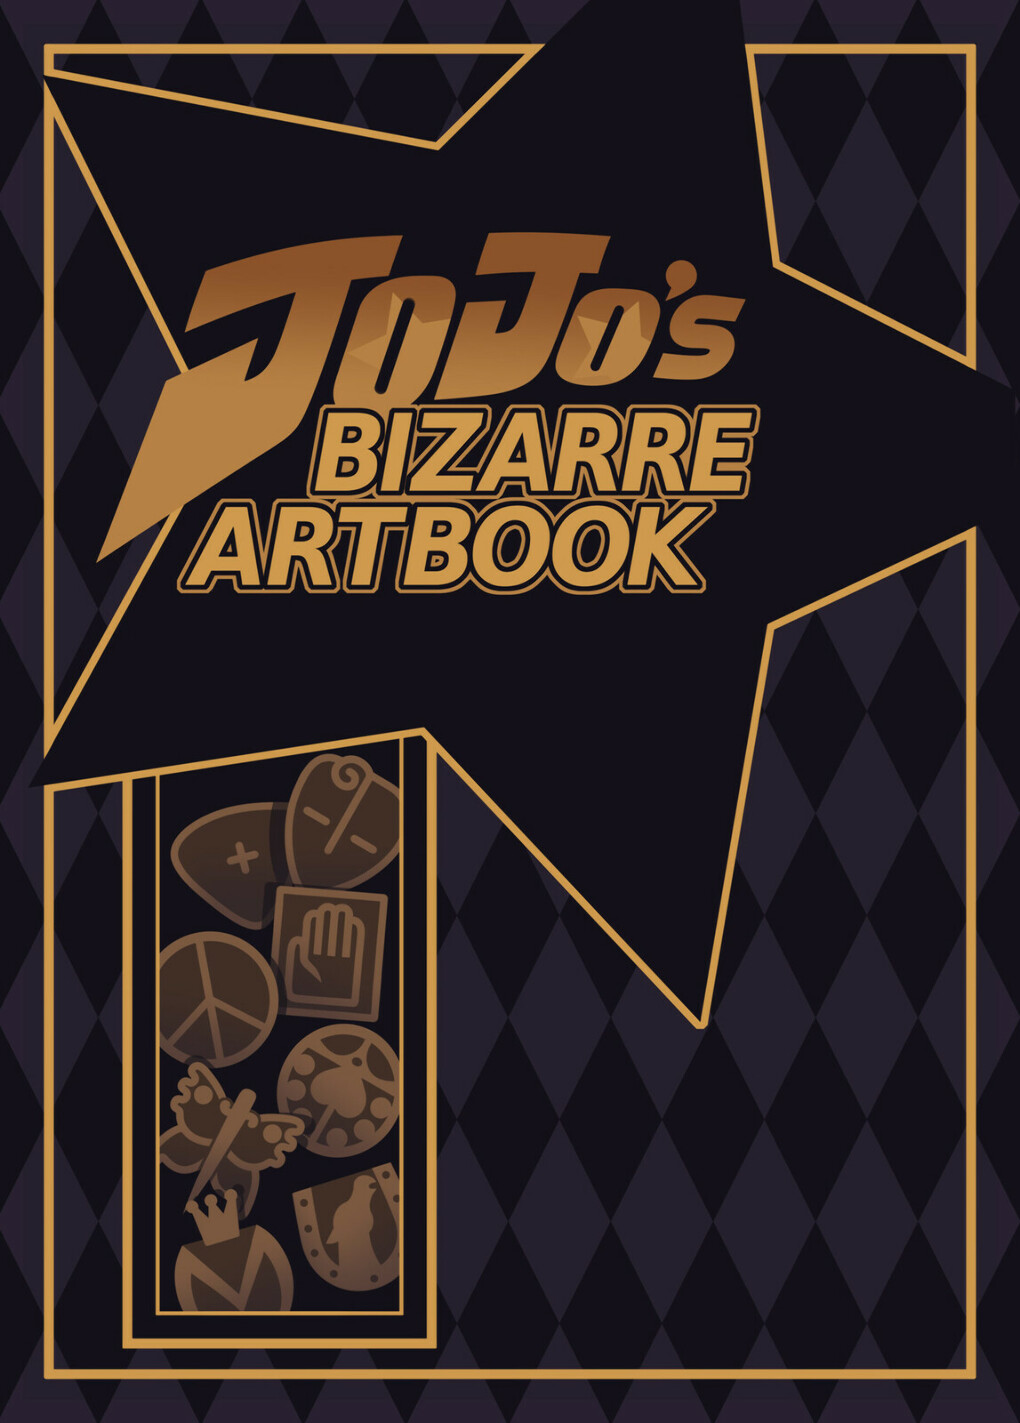 Jojo's Bizarre Adventure Artbook